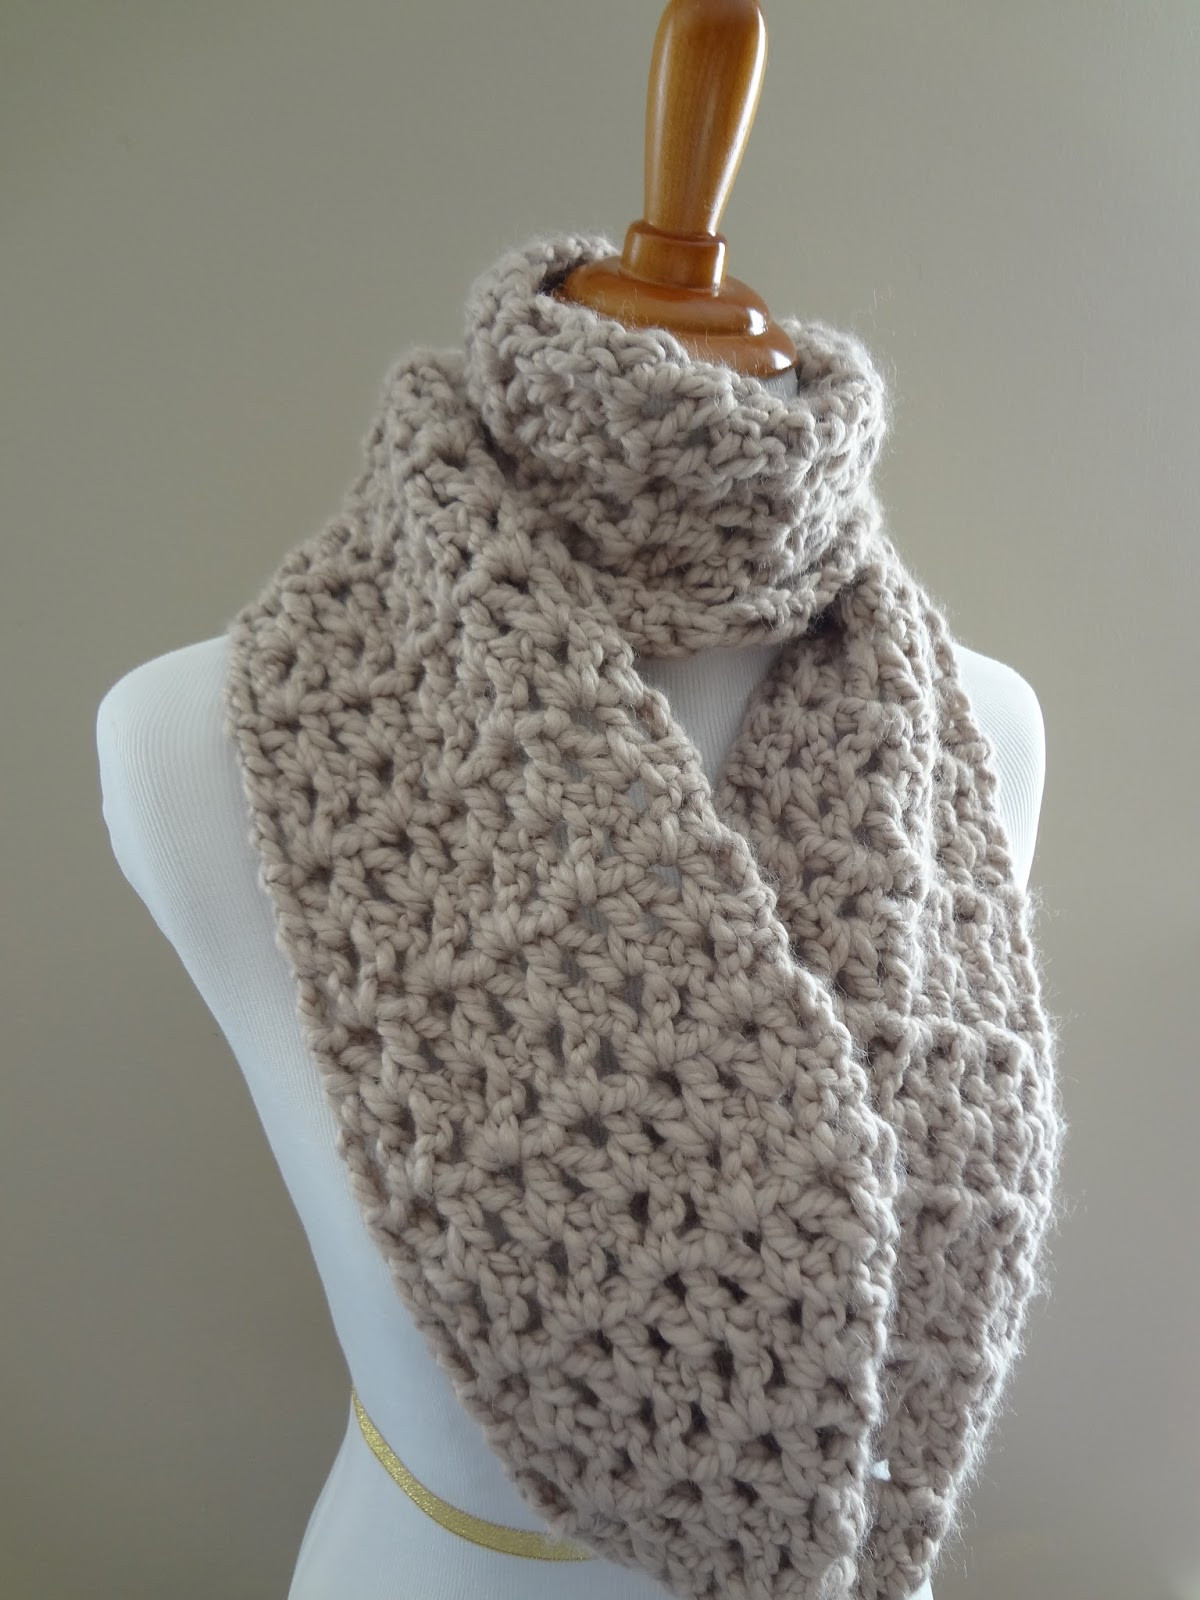 Crochet Scarf Awesome Fiber Flux Free Crochet Pattern Pavement Infinity Scarf Of Incredible 48 Images Crochet Scarf